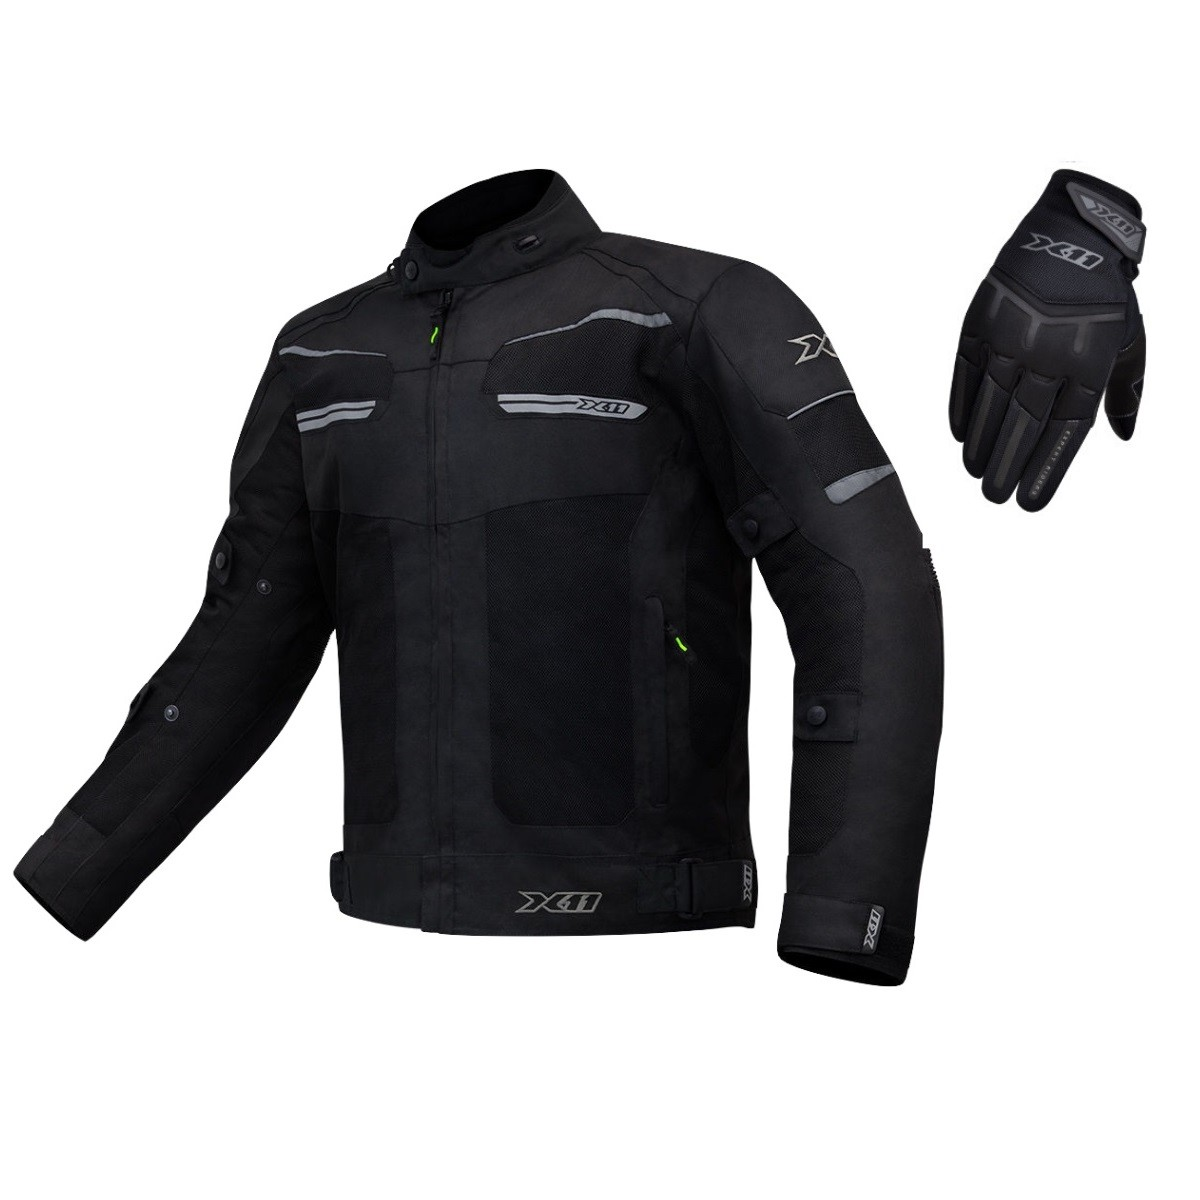 KIT JAQUETA X11 BREEZE MASC PRETO + LUVA FIT X